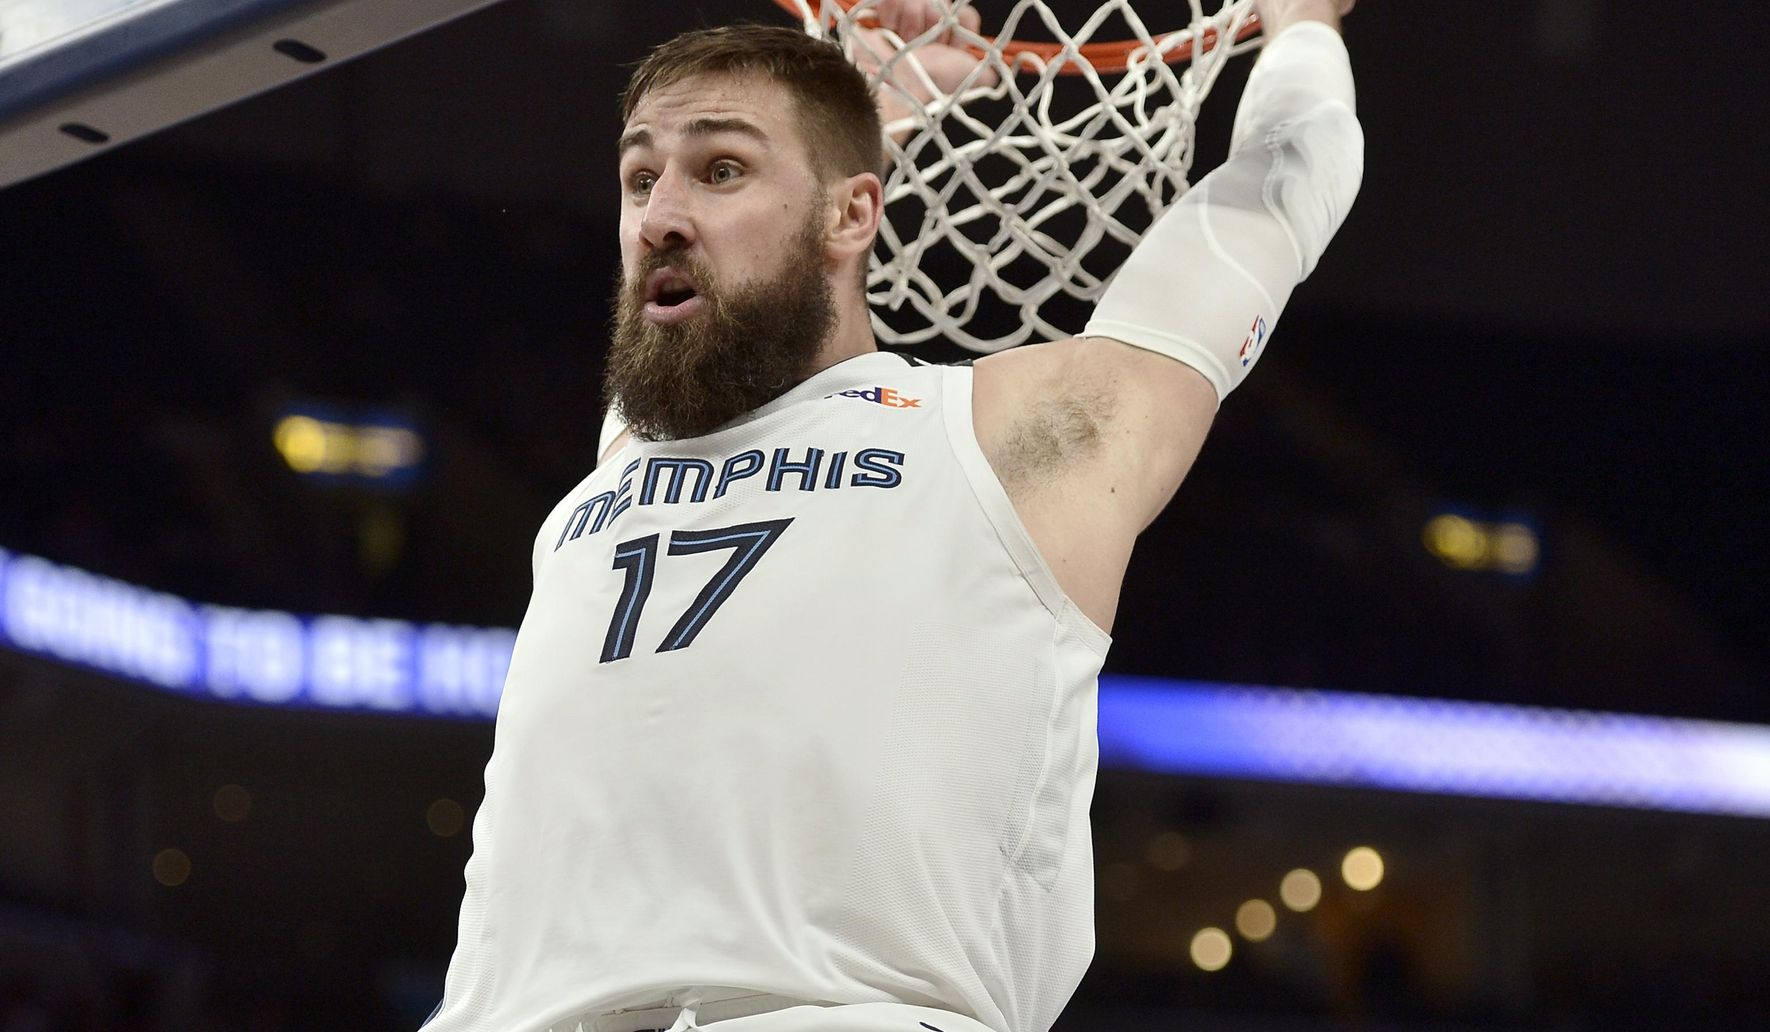 Nuggets_grizzlies_basketball_45700_c0-128-3097-1933_s1770x1032